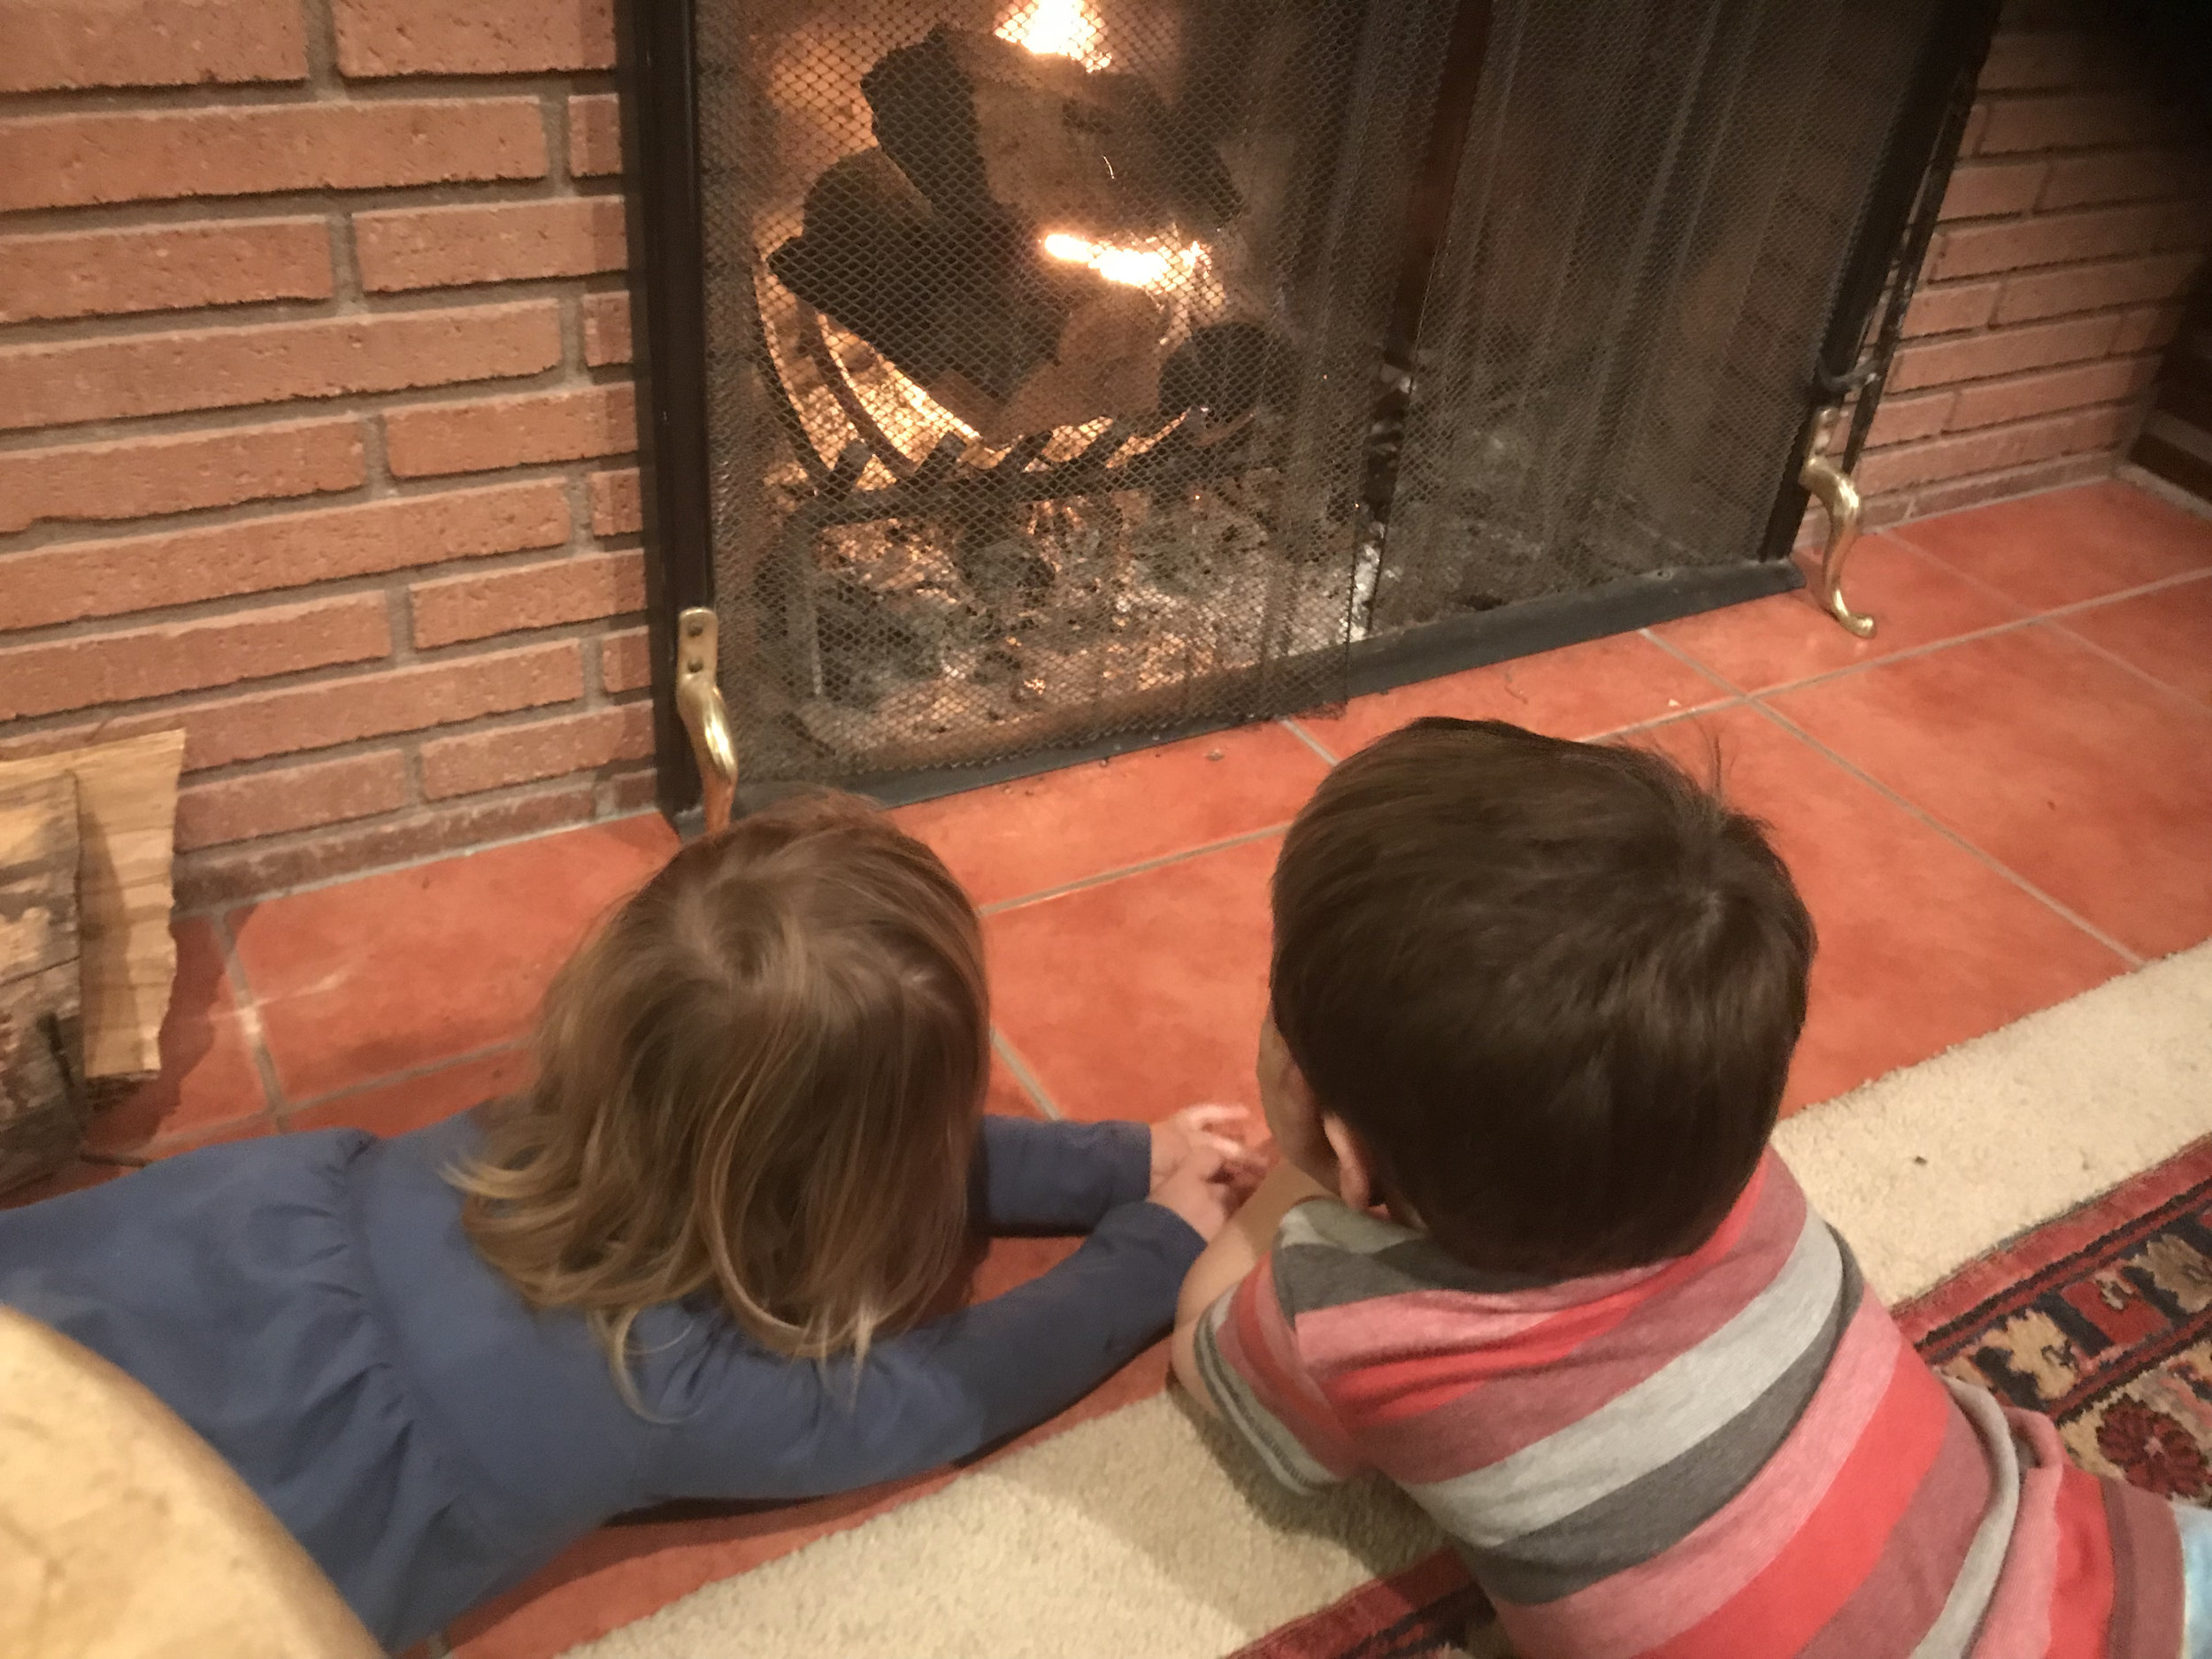 Nephew and cousin holiday bonding time